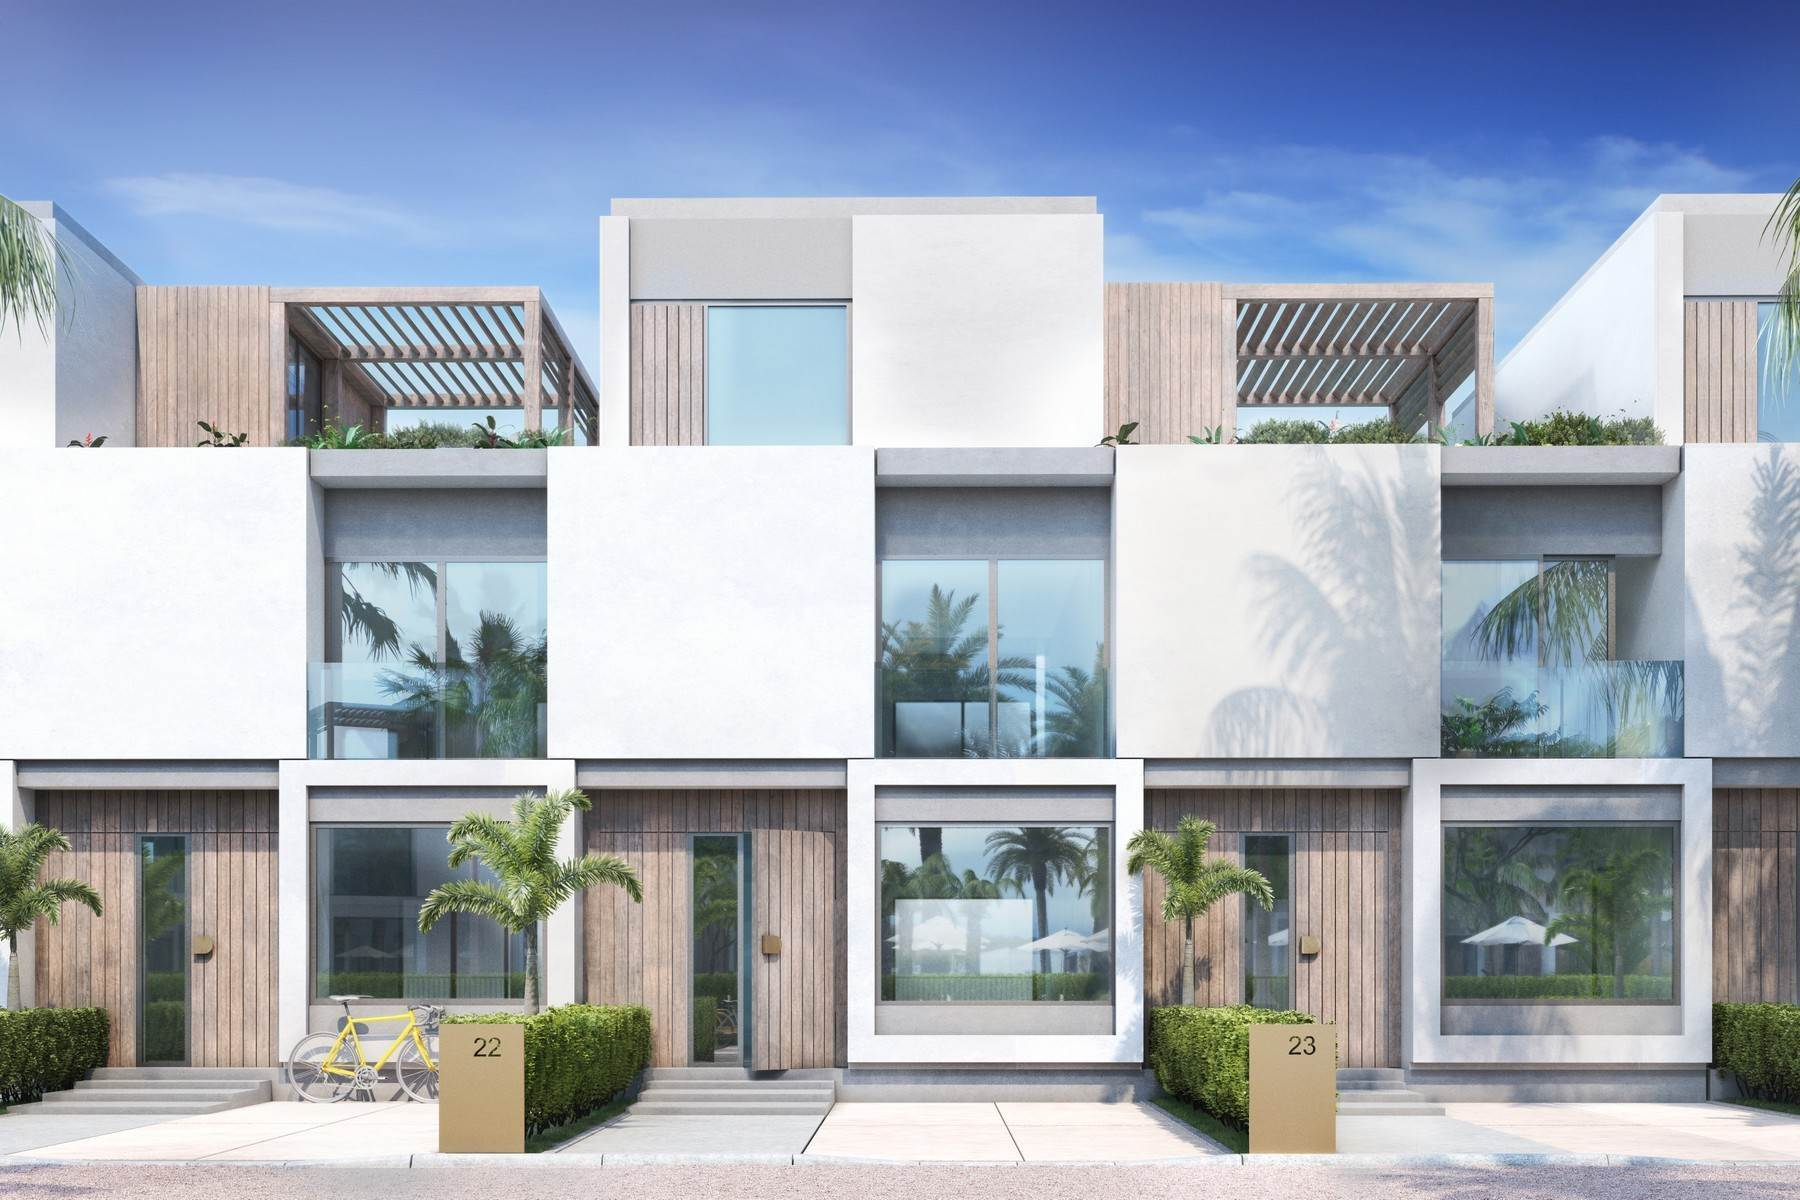 11. townhouses for Sale at SOUTH BANK - BOATHOUSES - TWO BEDROOM - E3 South Bank, Long Bay, Providenciales Turks And Caicos Islands